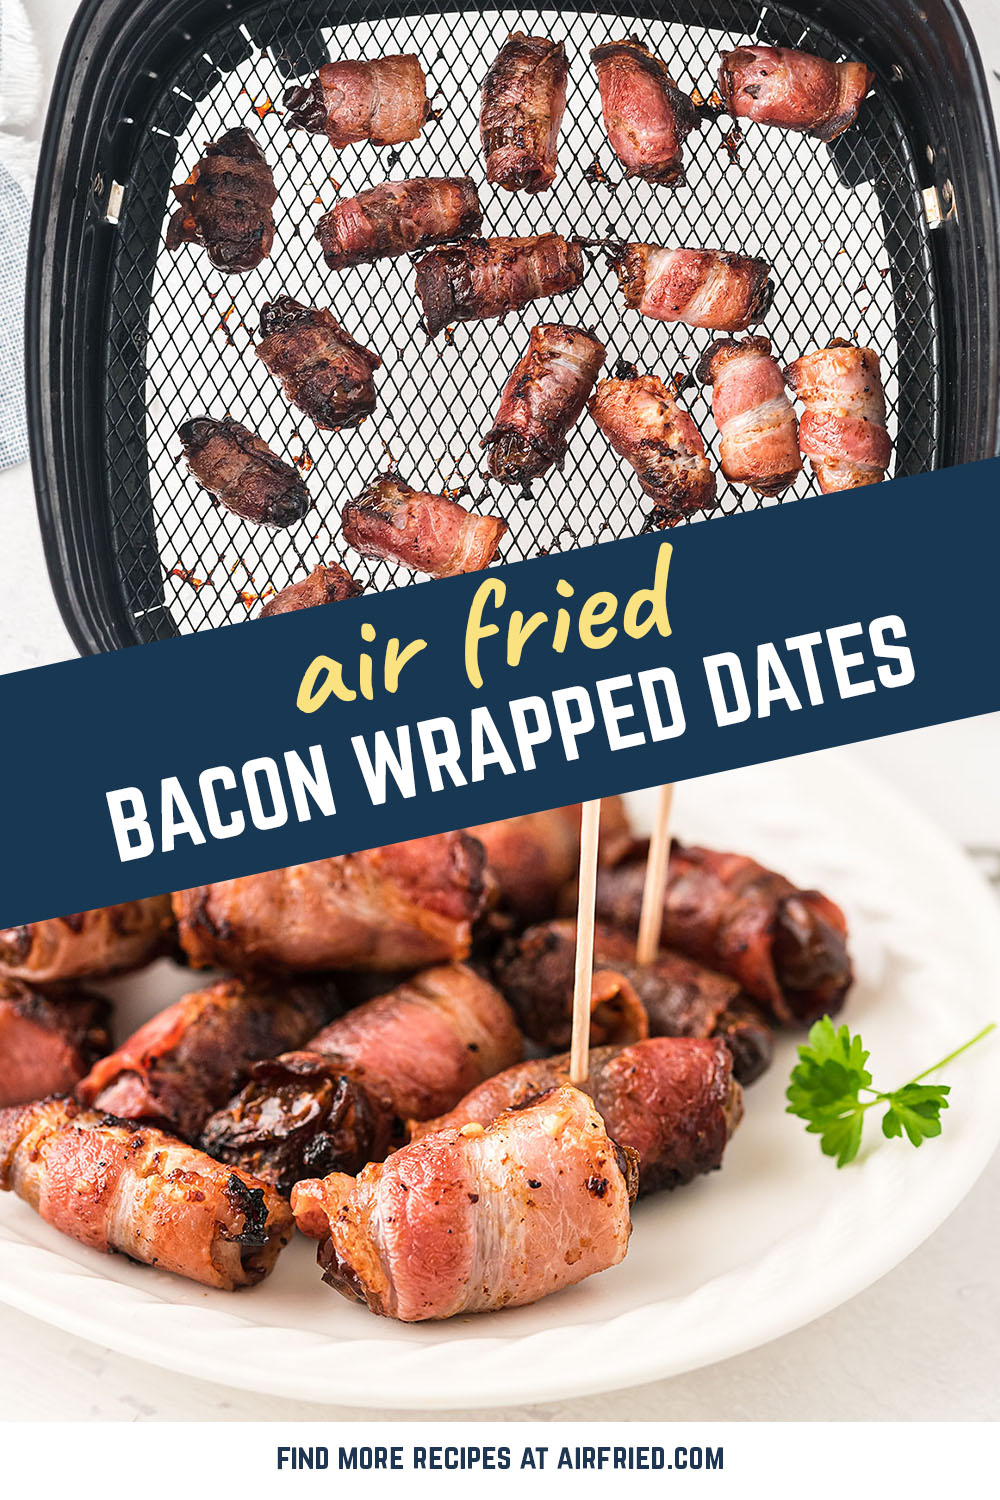 This is a very simple recipe for a nice, unique appetizer.  Wonderful for a date night! #airfryer #dates #bacon